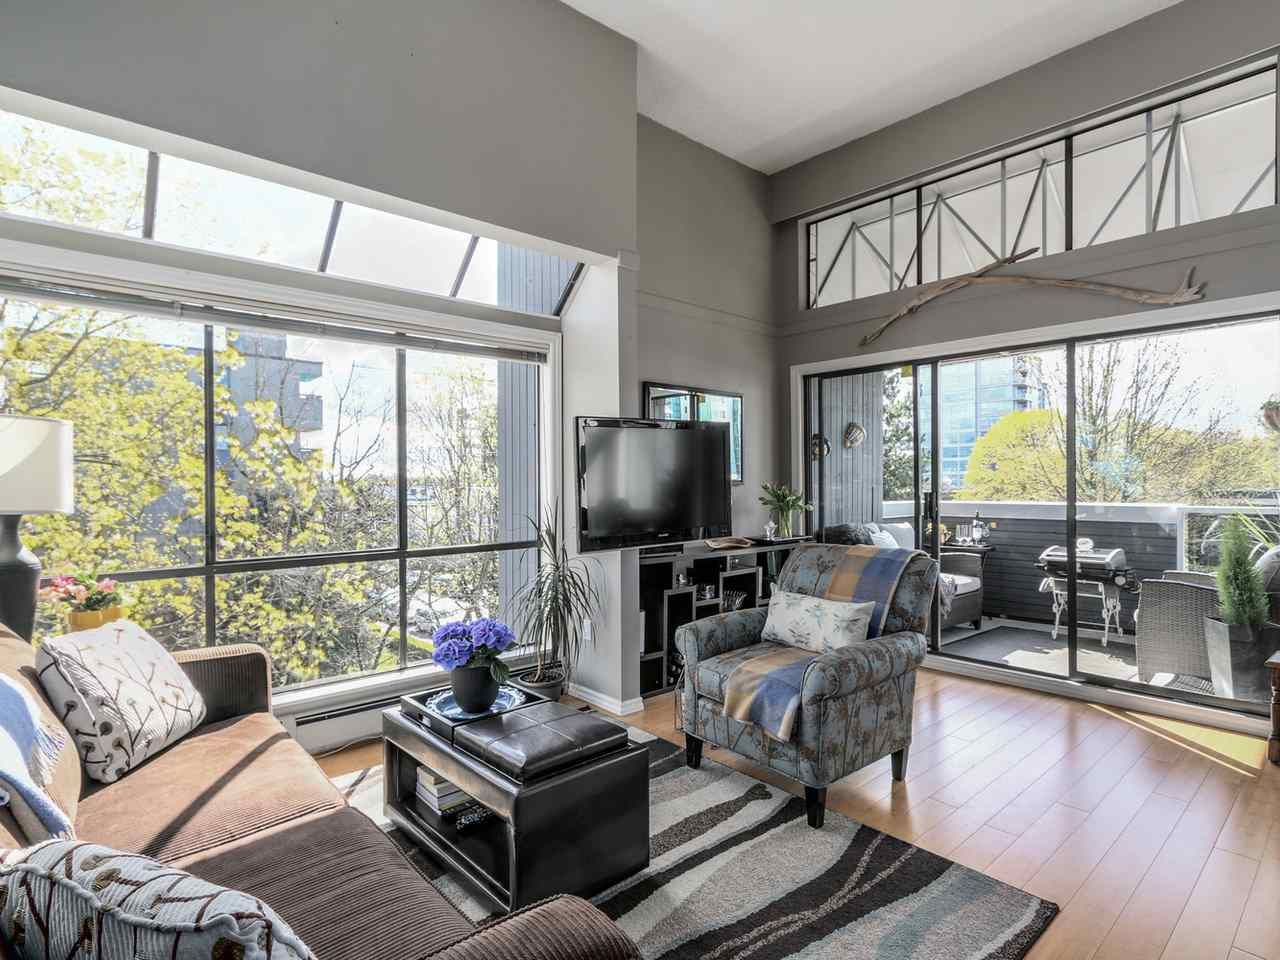 Main Photo: P3 2885 SPRUCE Street in Vancouver: Fairview VW Condo for sale (Vancouver West)  : MLS®# R2052789